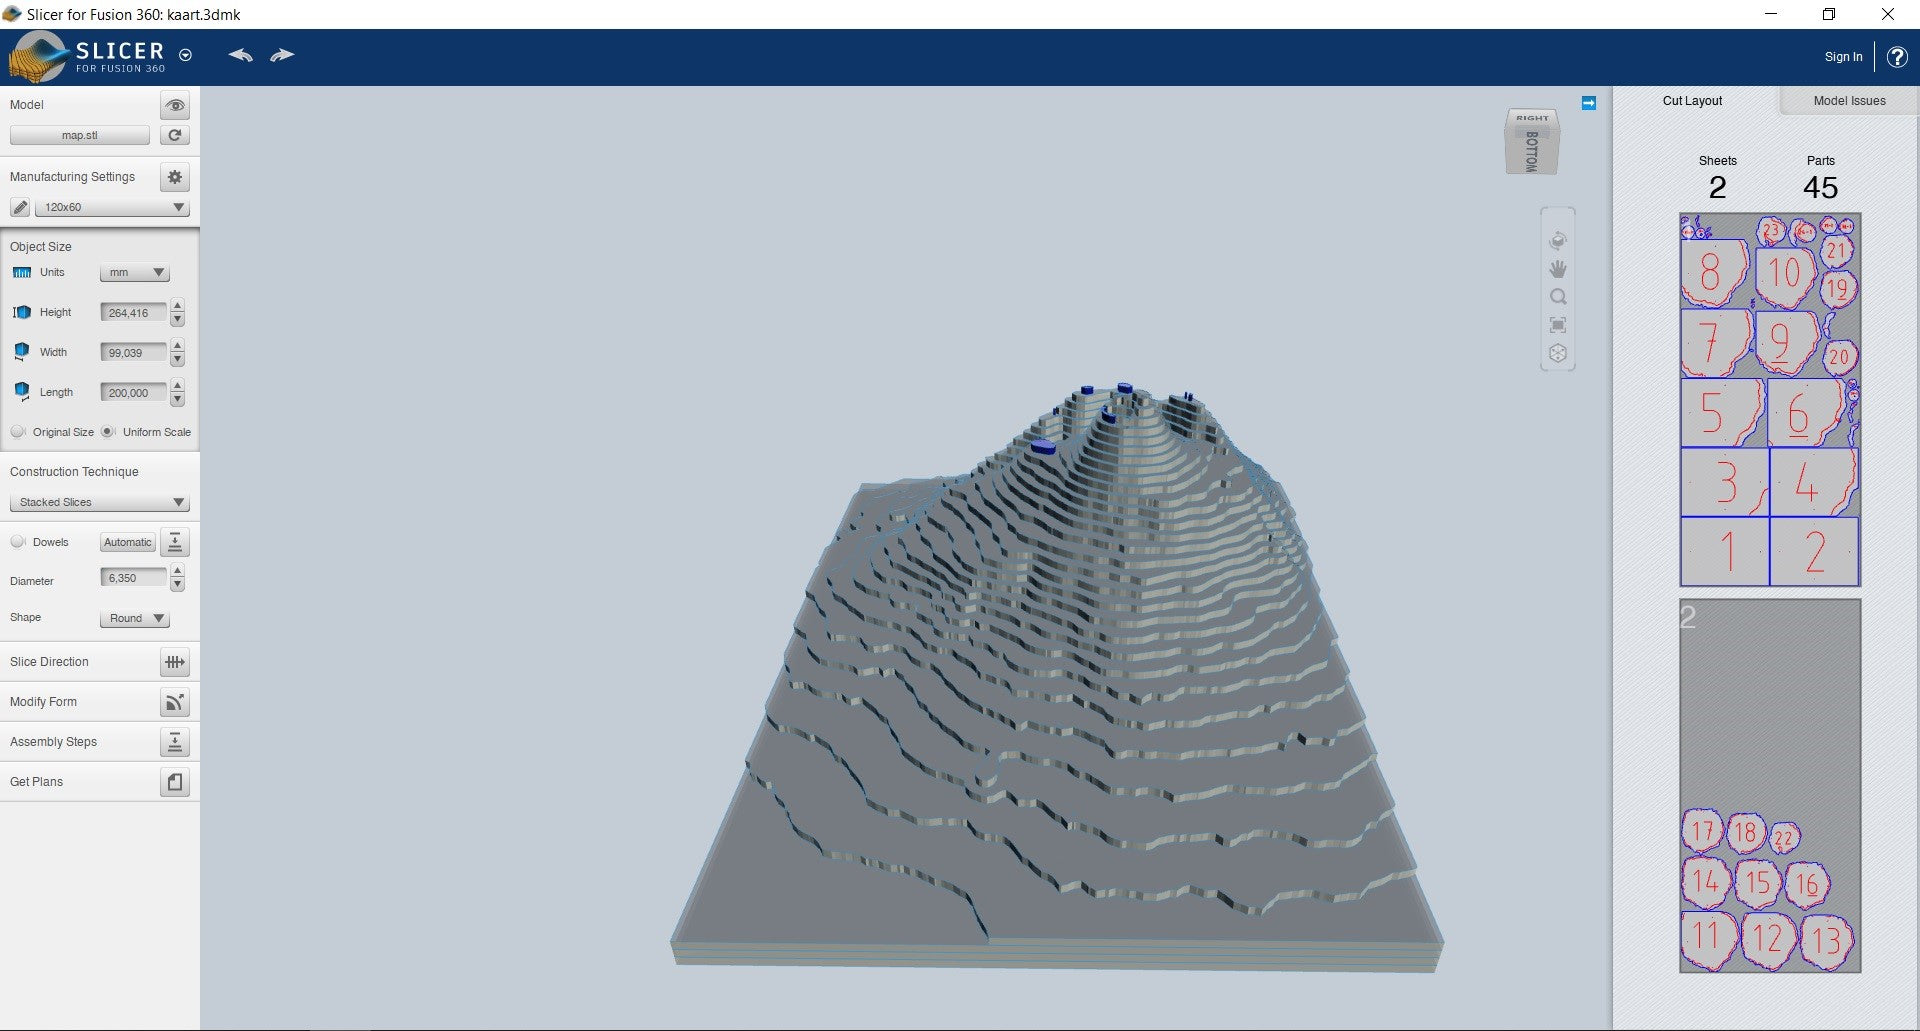 Slicerforfusion 3D map